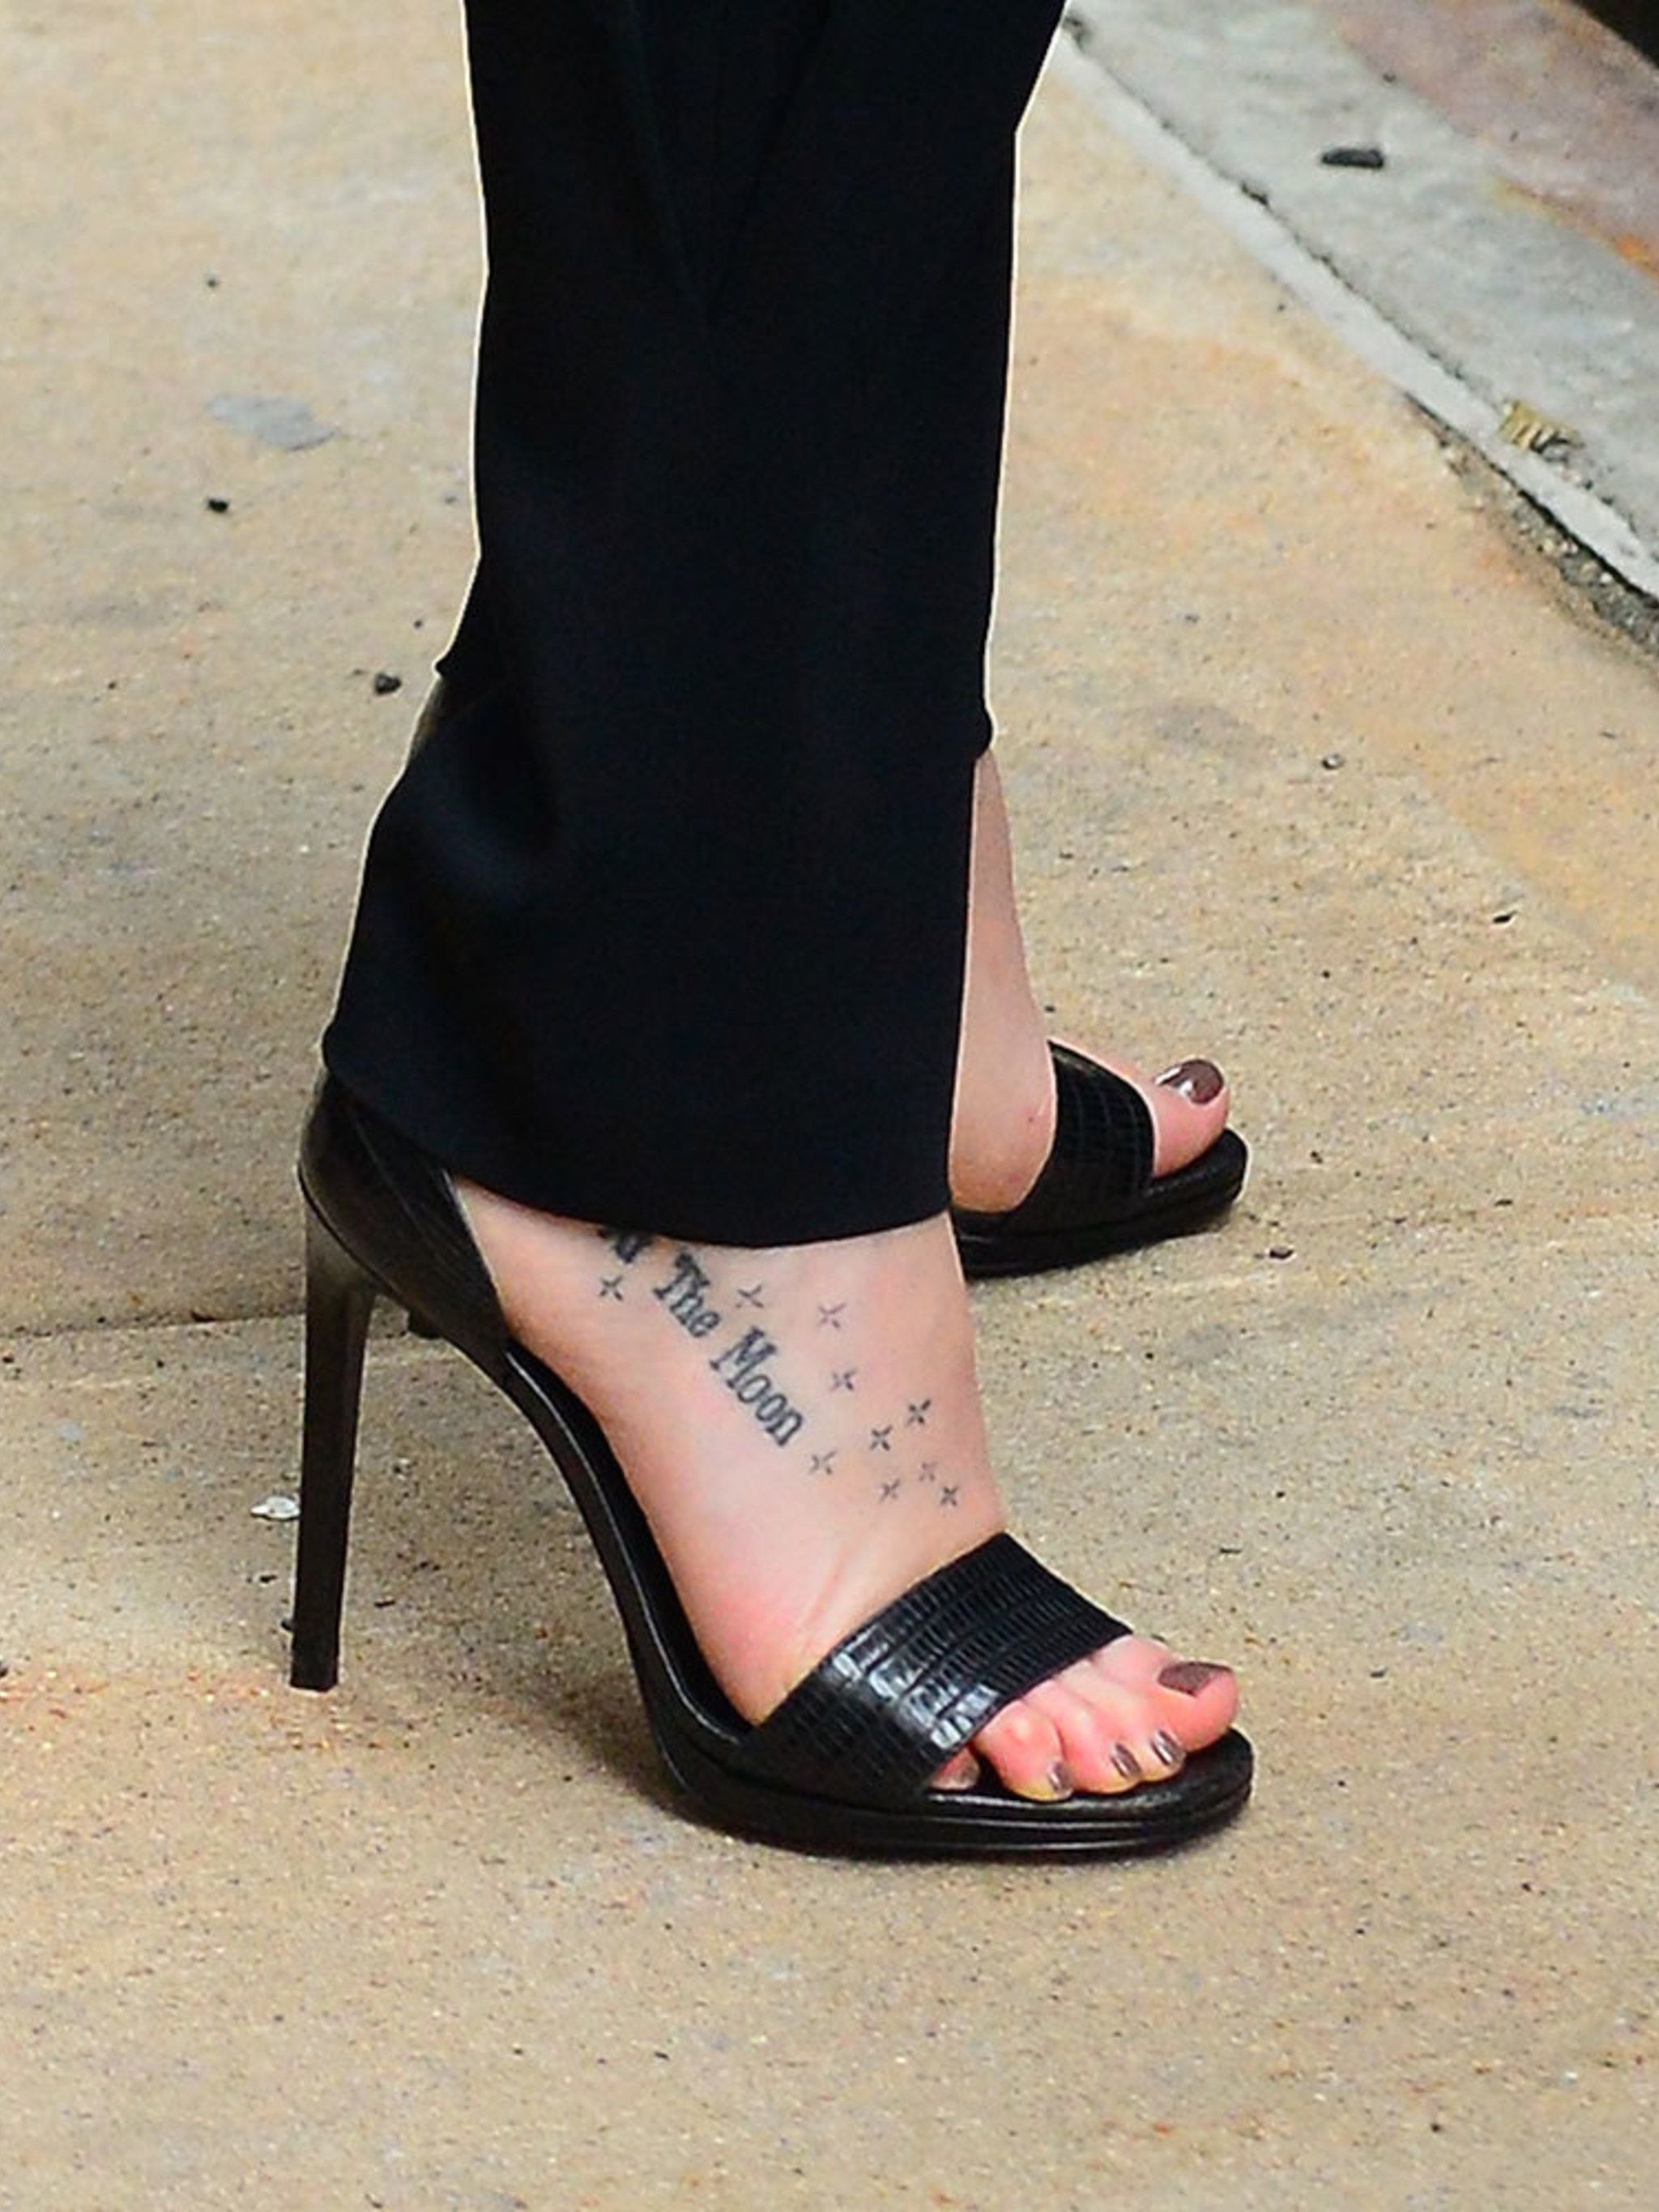 29bcbe1c6cdeb Celebrity Tattoos - The Best Celebrity Tattoo Pictures